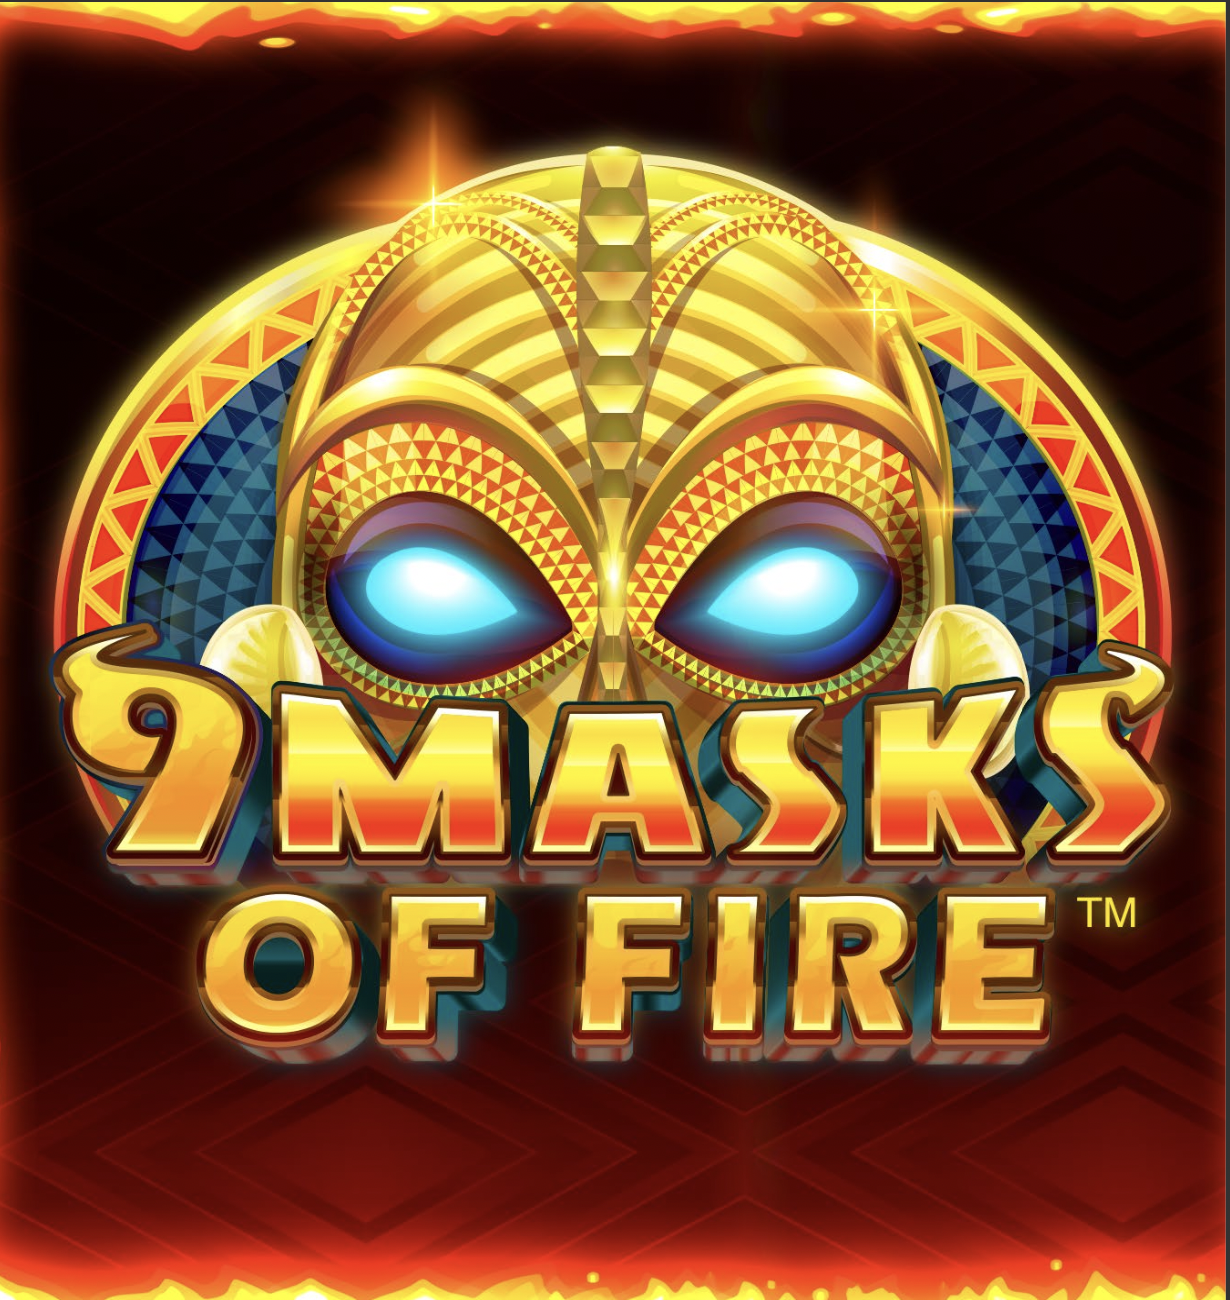 Gameburger Proudly Welcomes You To Explore The High Energy World Of Africa With 9 Masks Of Fire.